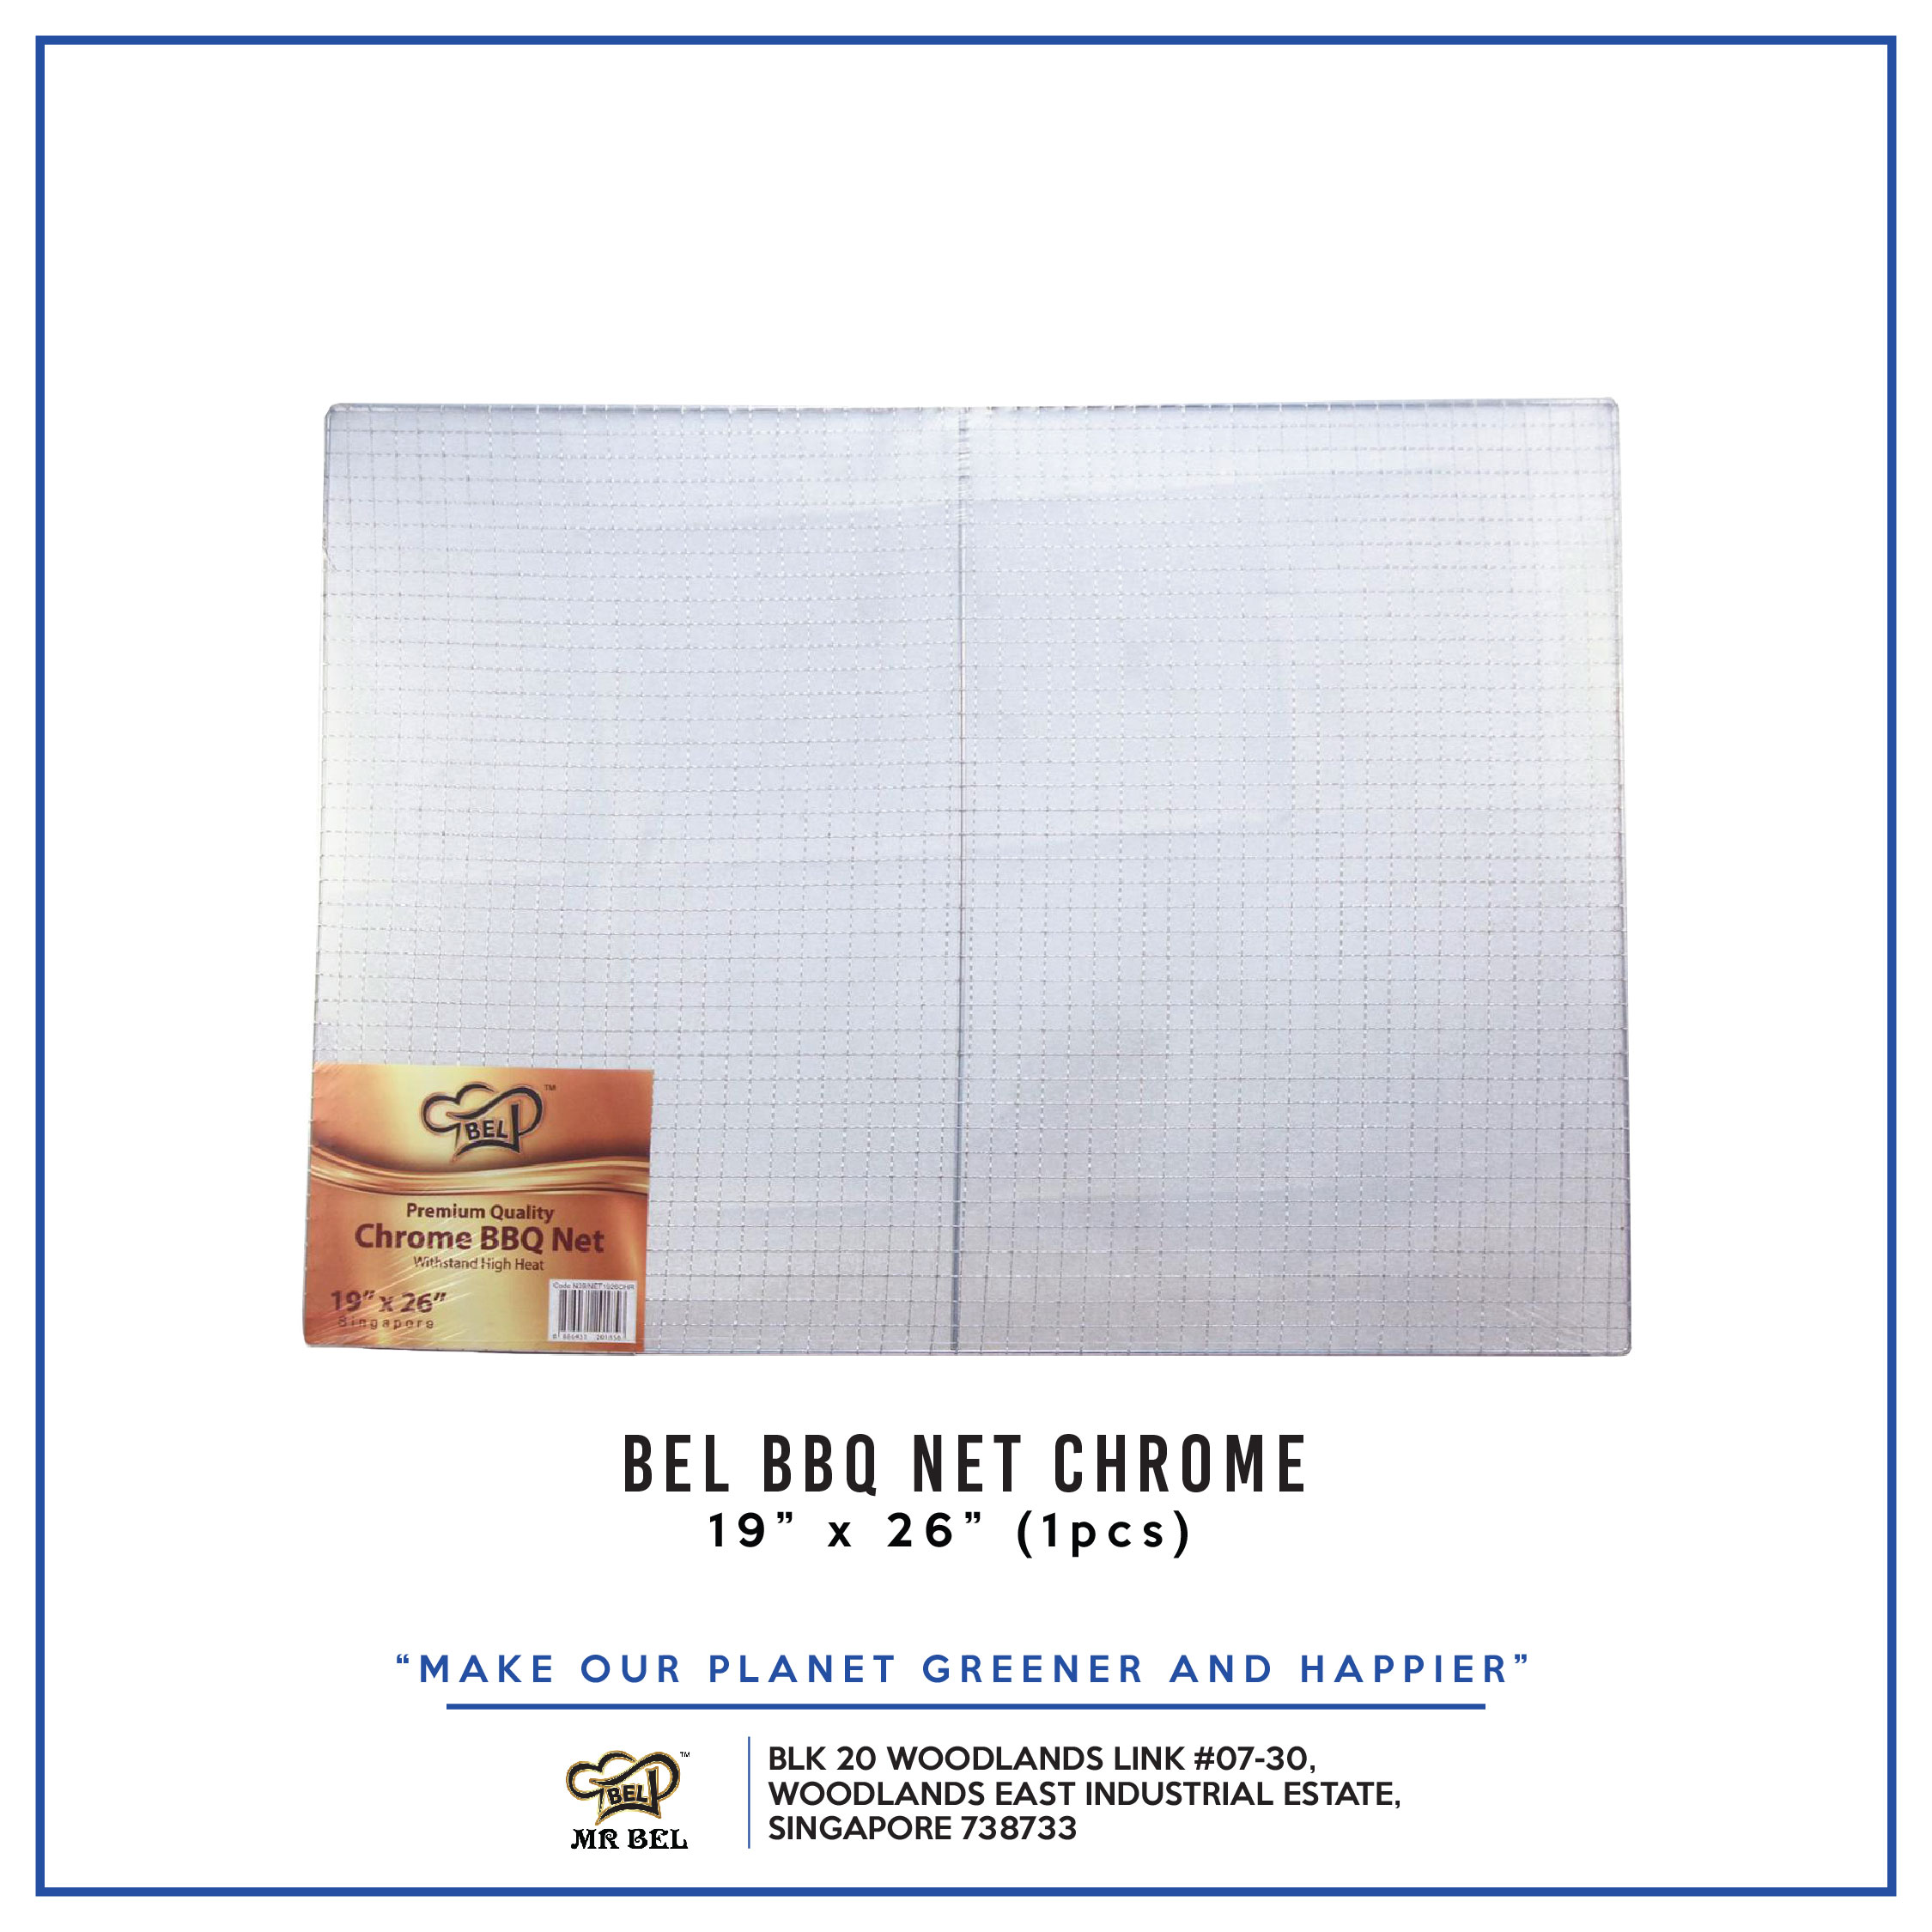 Bel BBQ NET 19  X 26  CHROME per pack - 1 Carton (20packs)